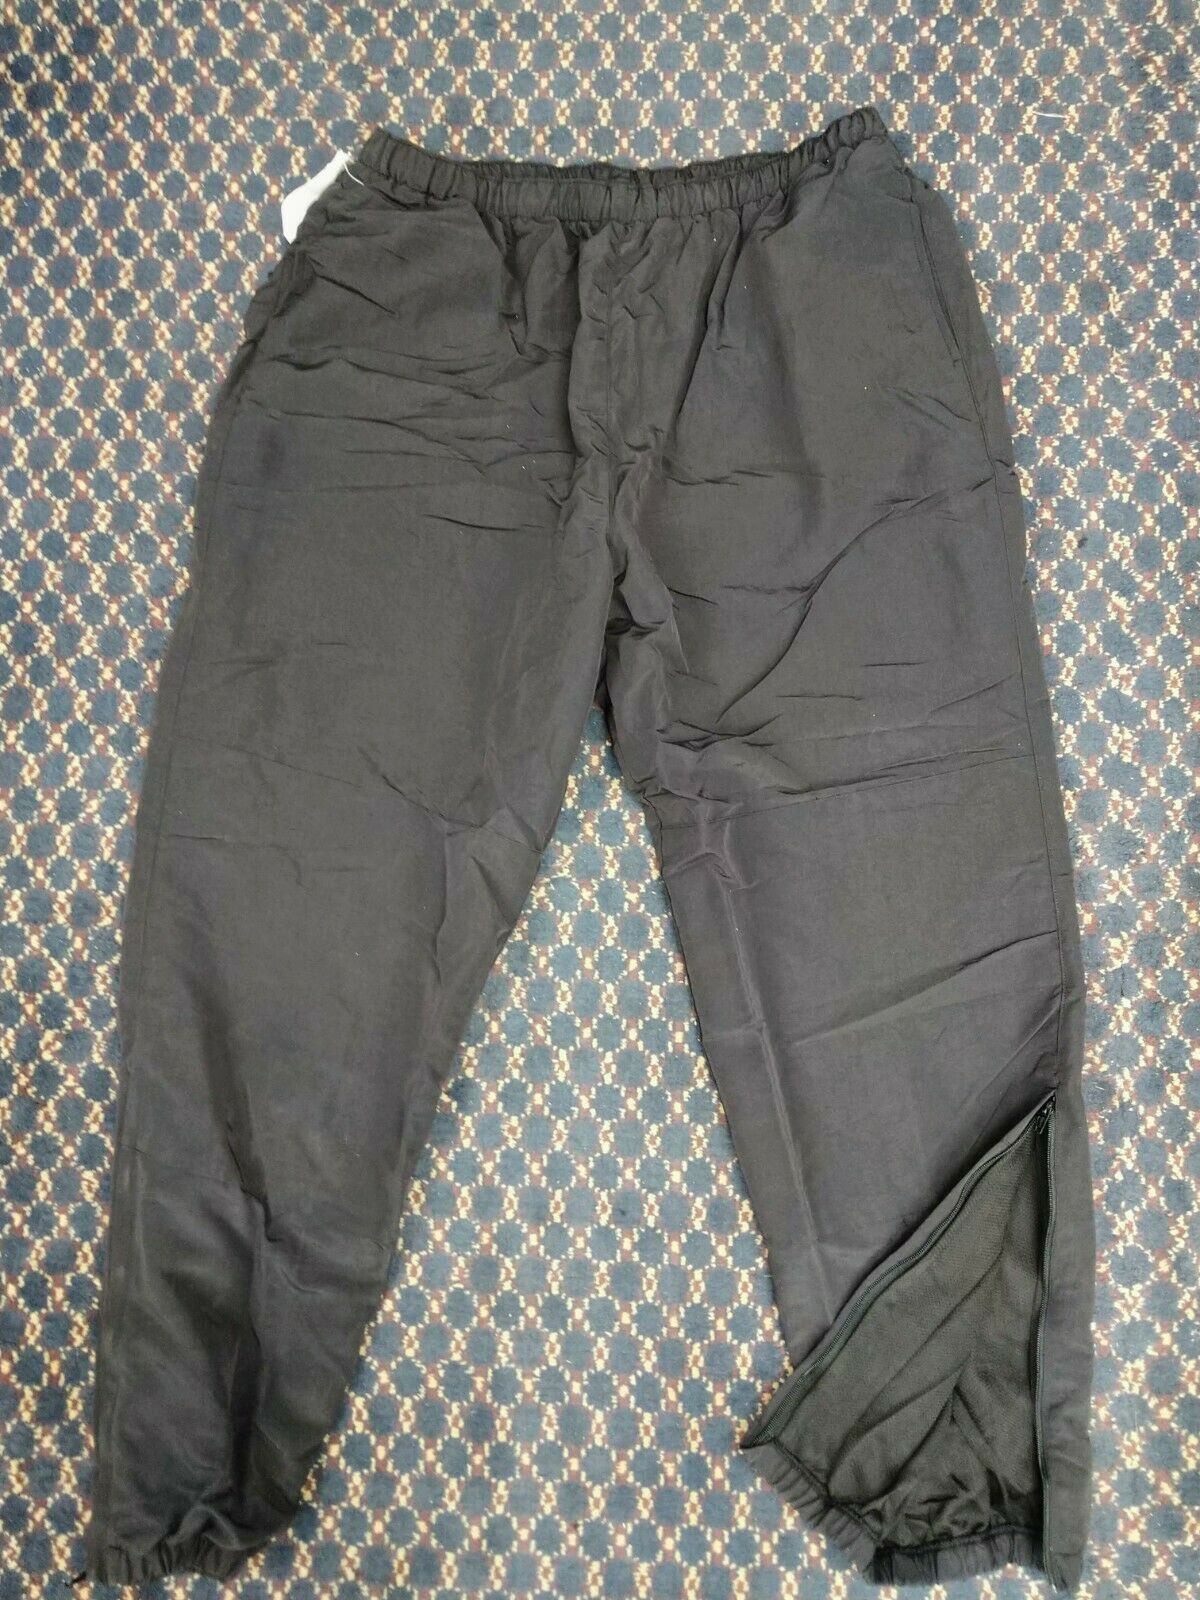 IPFU Pants Army PT Physical Training By DSCP XX-Large-Short